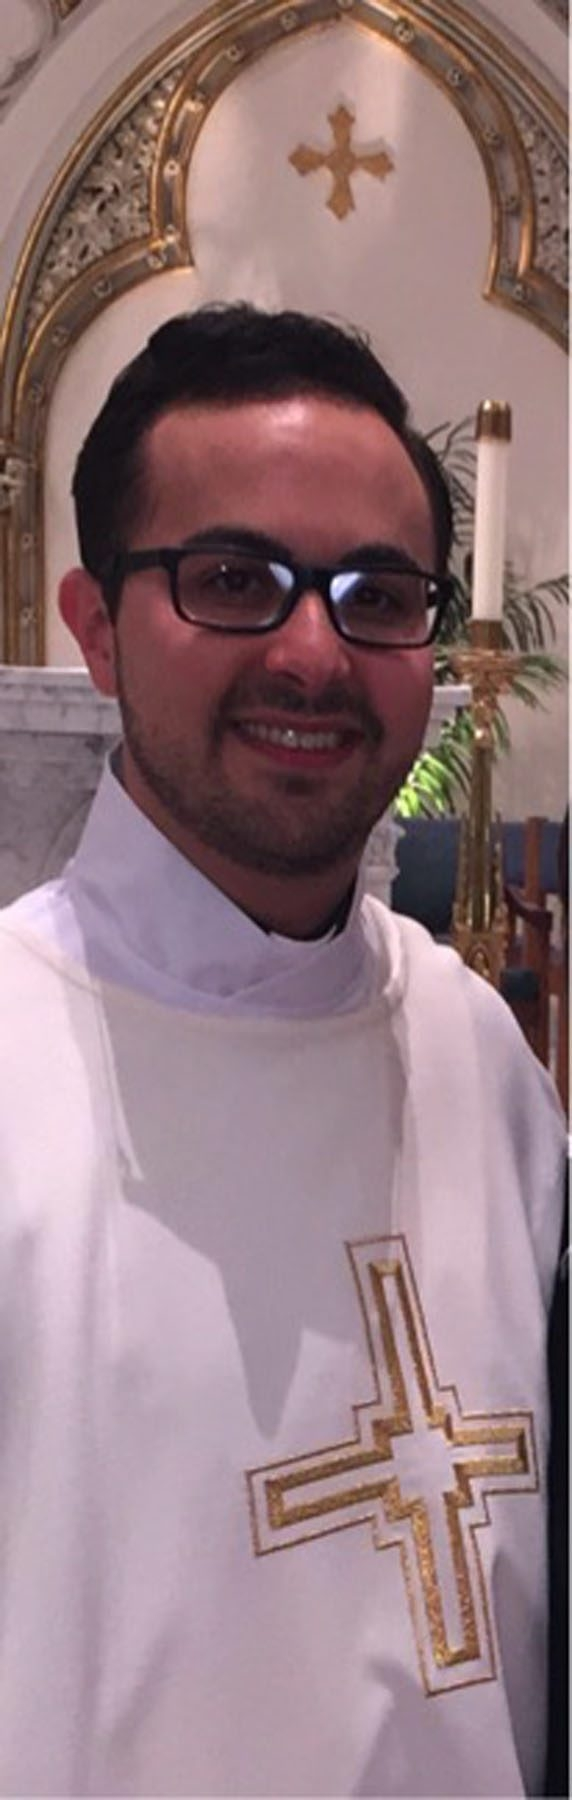 Sam Giangreco journeyed to see Pope Francis.